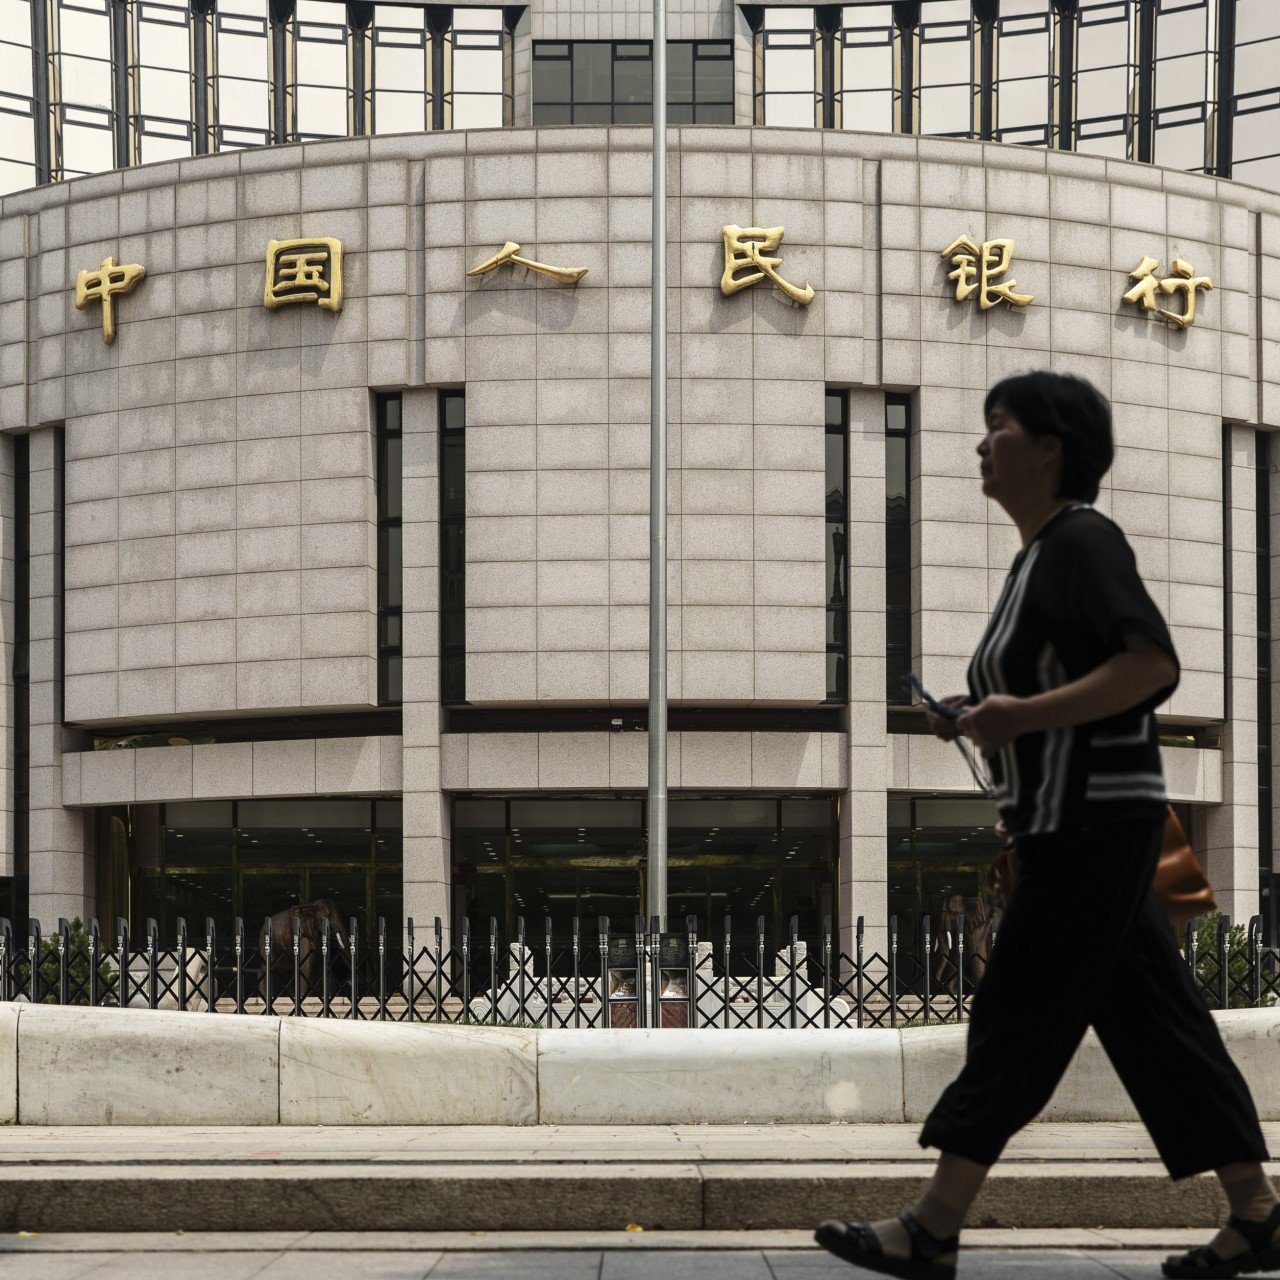 Best Sectors To Invest In 2020 China to open up finance sector to more foreign investment in 2020